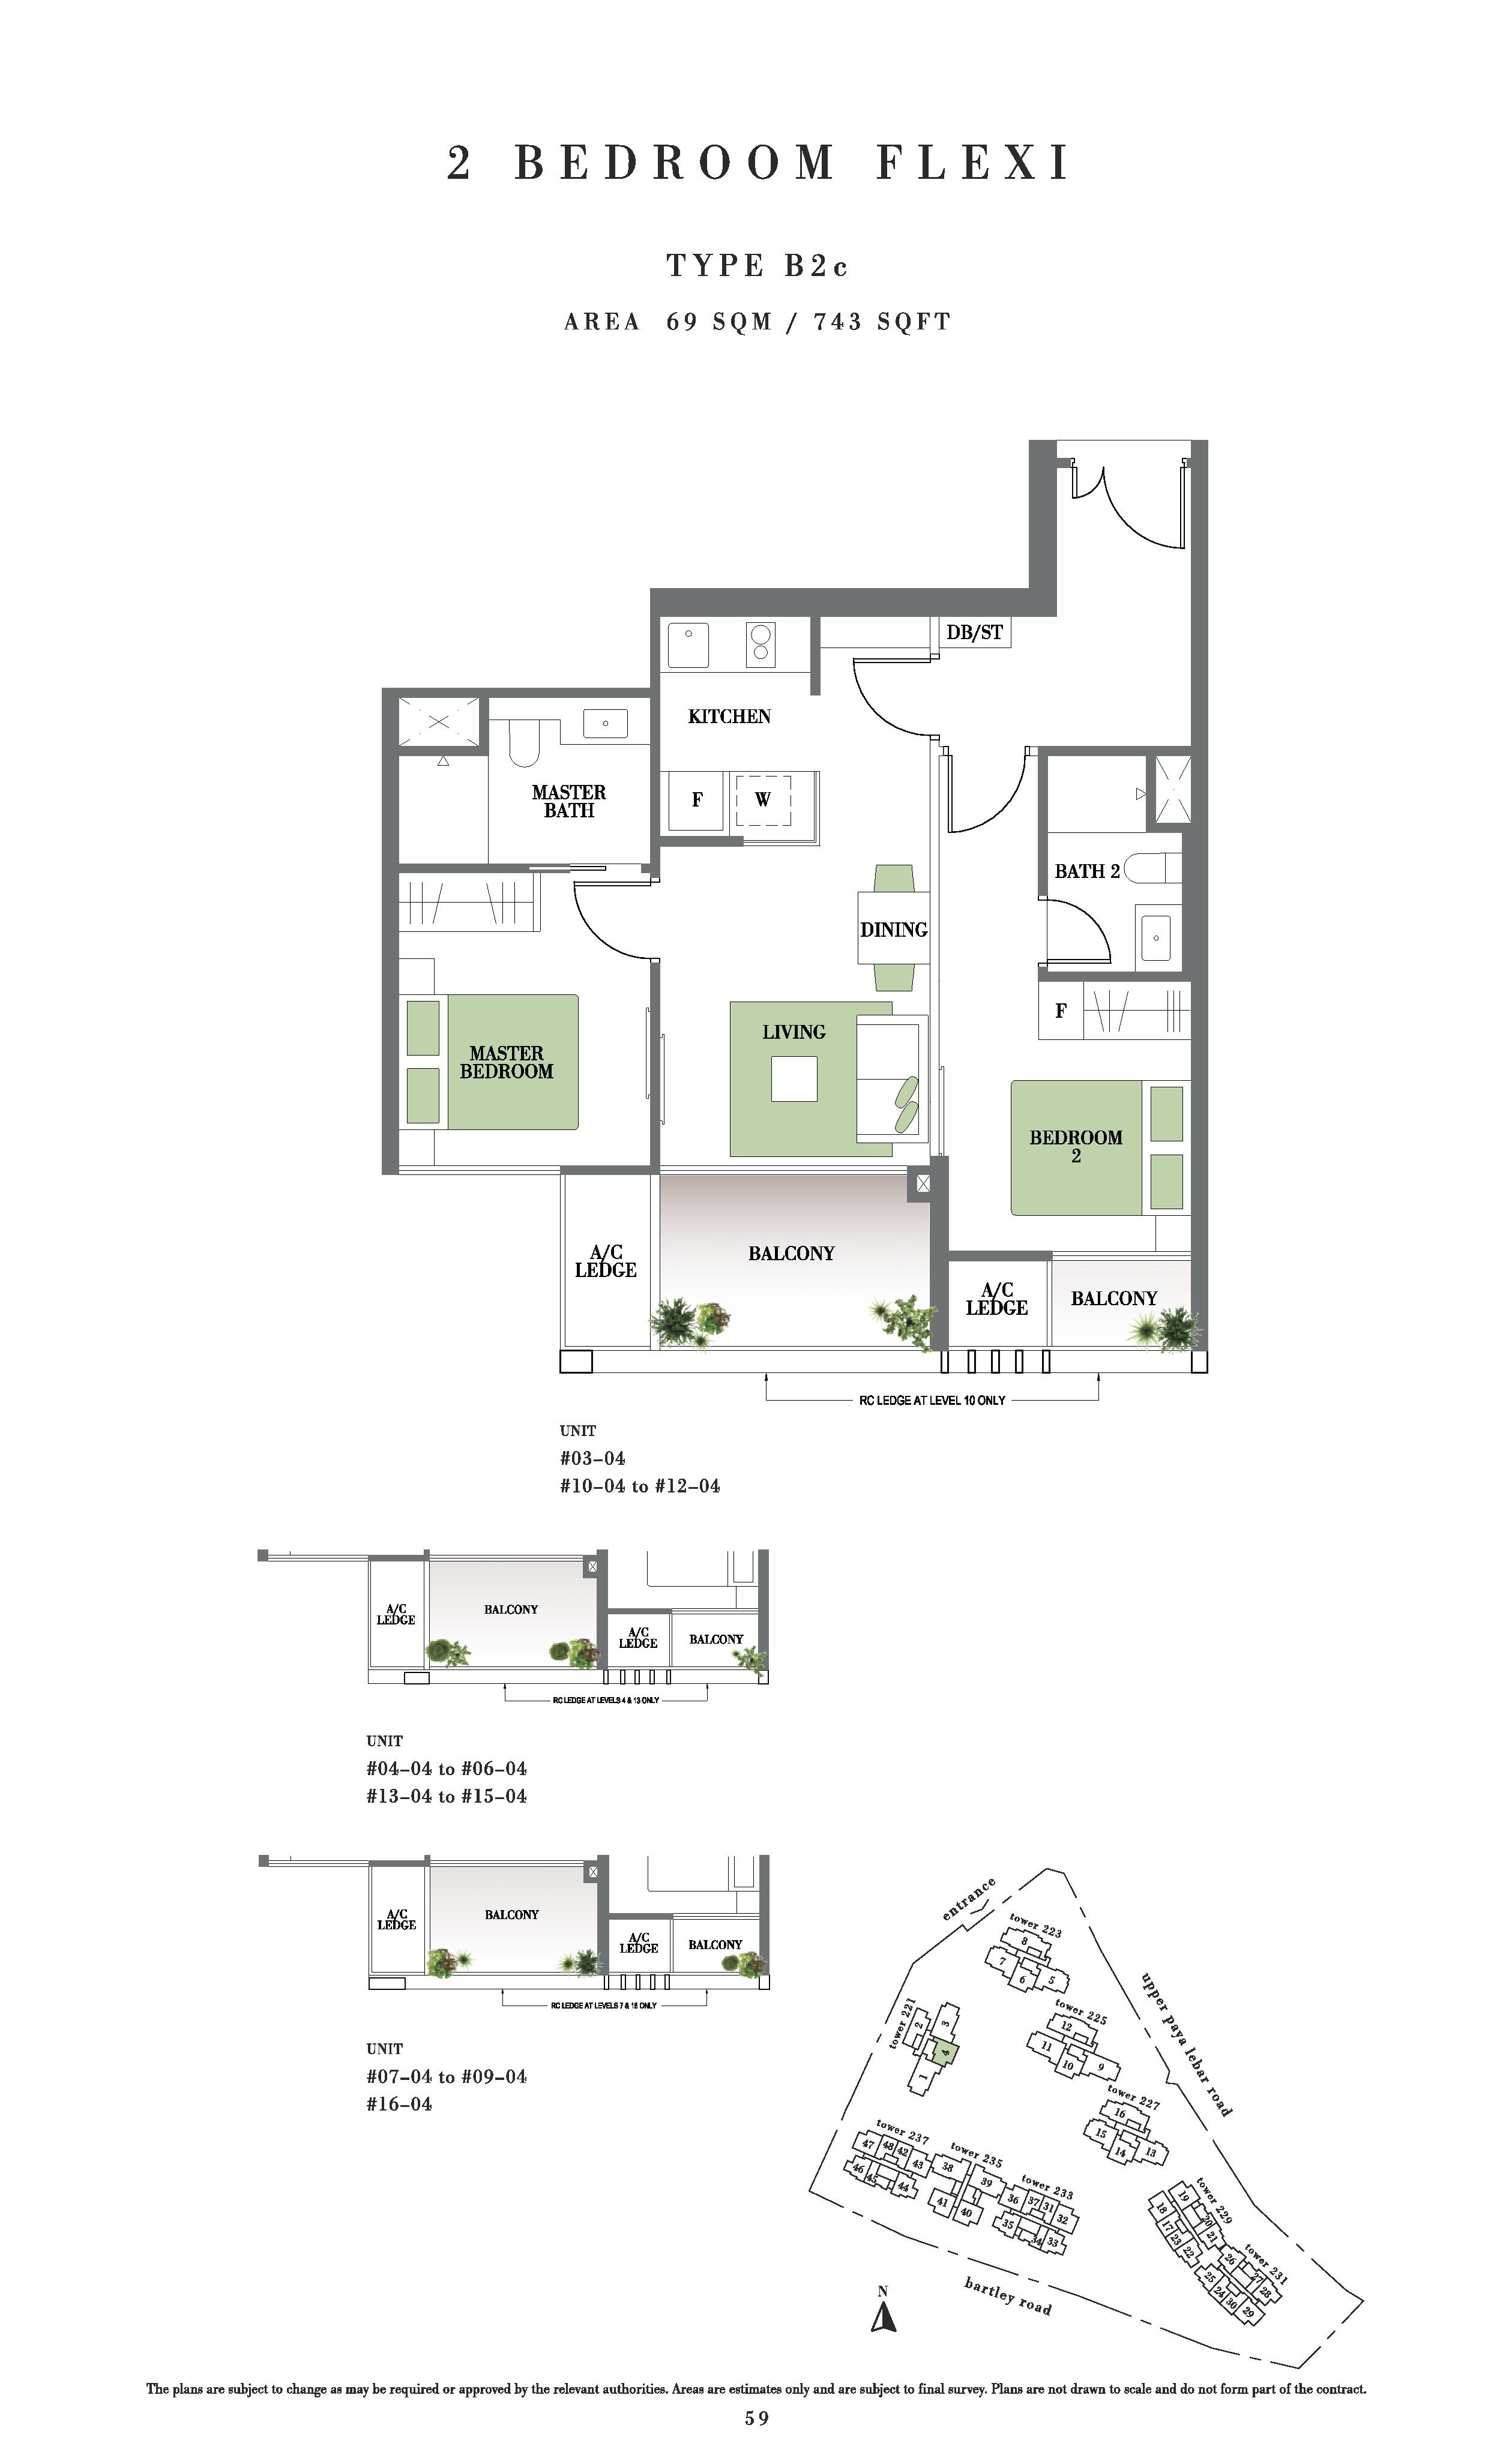 Botanique @ Bartley 2 Bedroom Flexi Floor Plans Type B2c